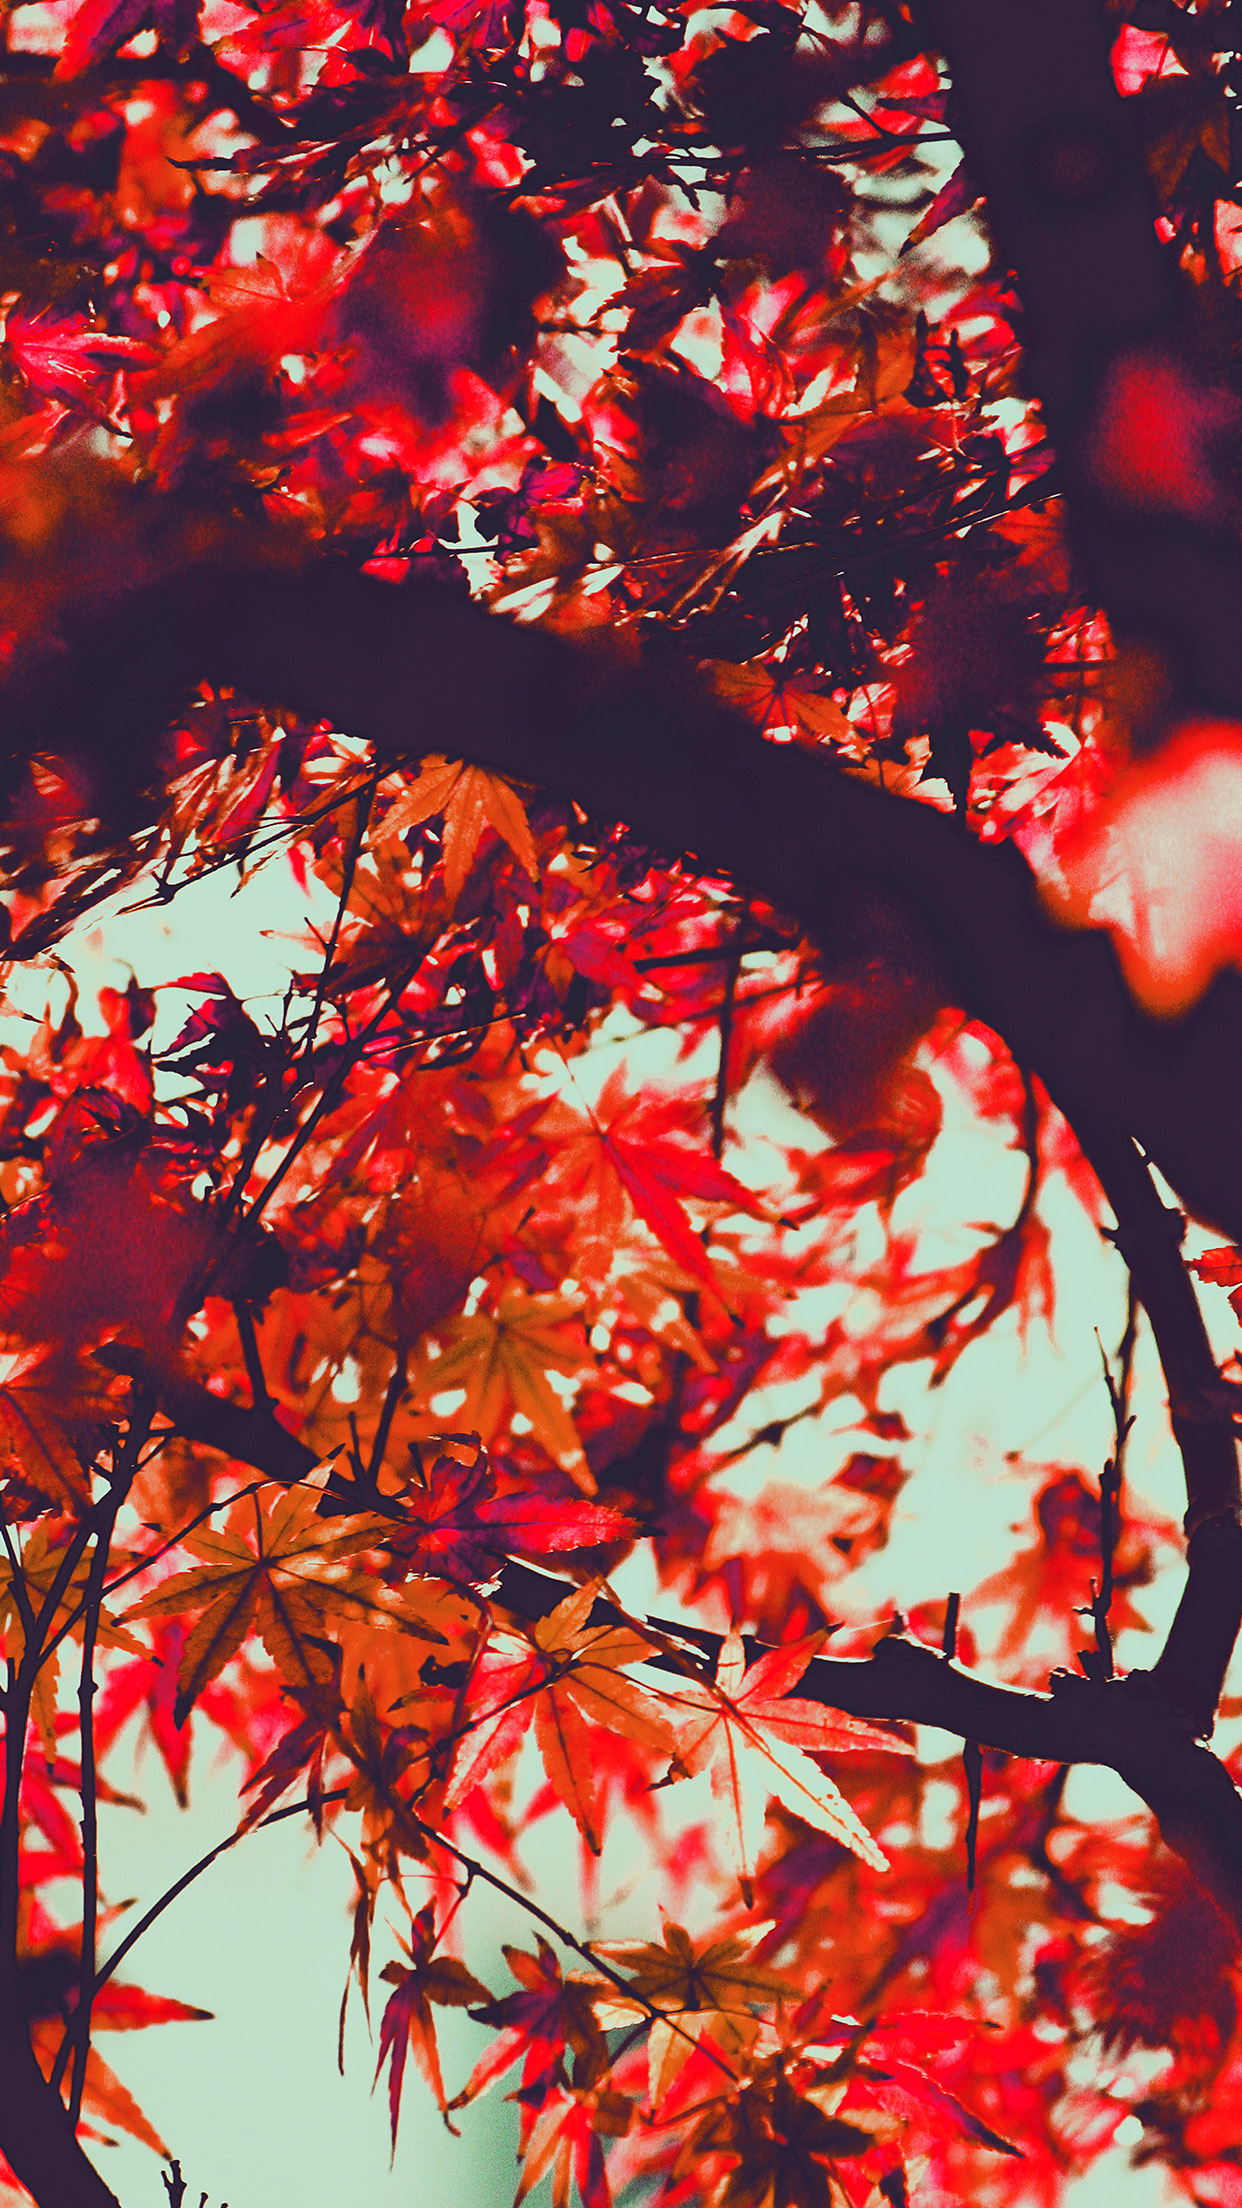 Autumn Images Download Free Images on